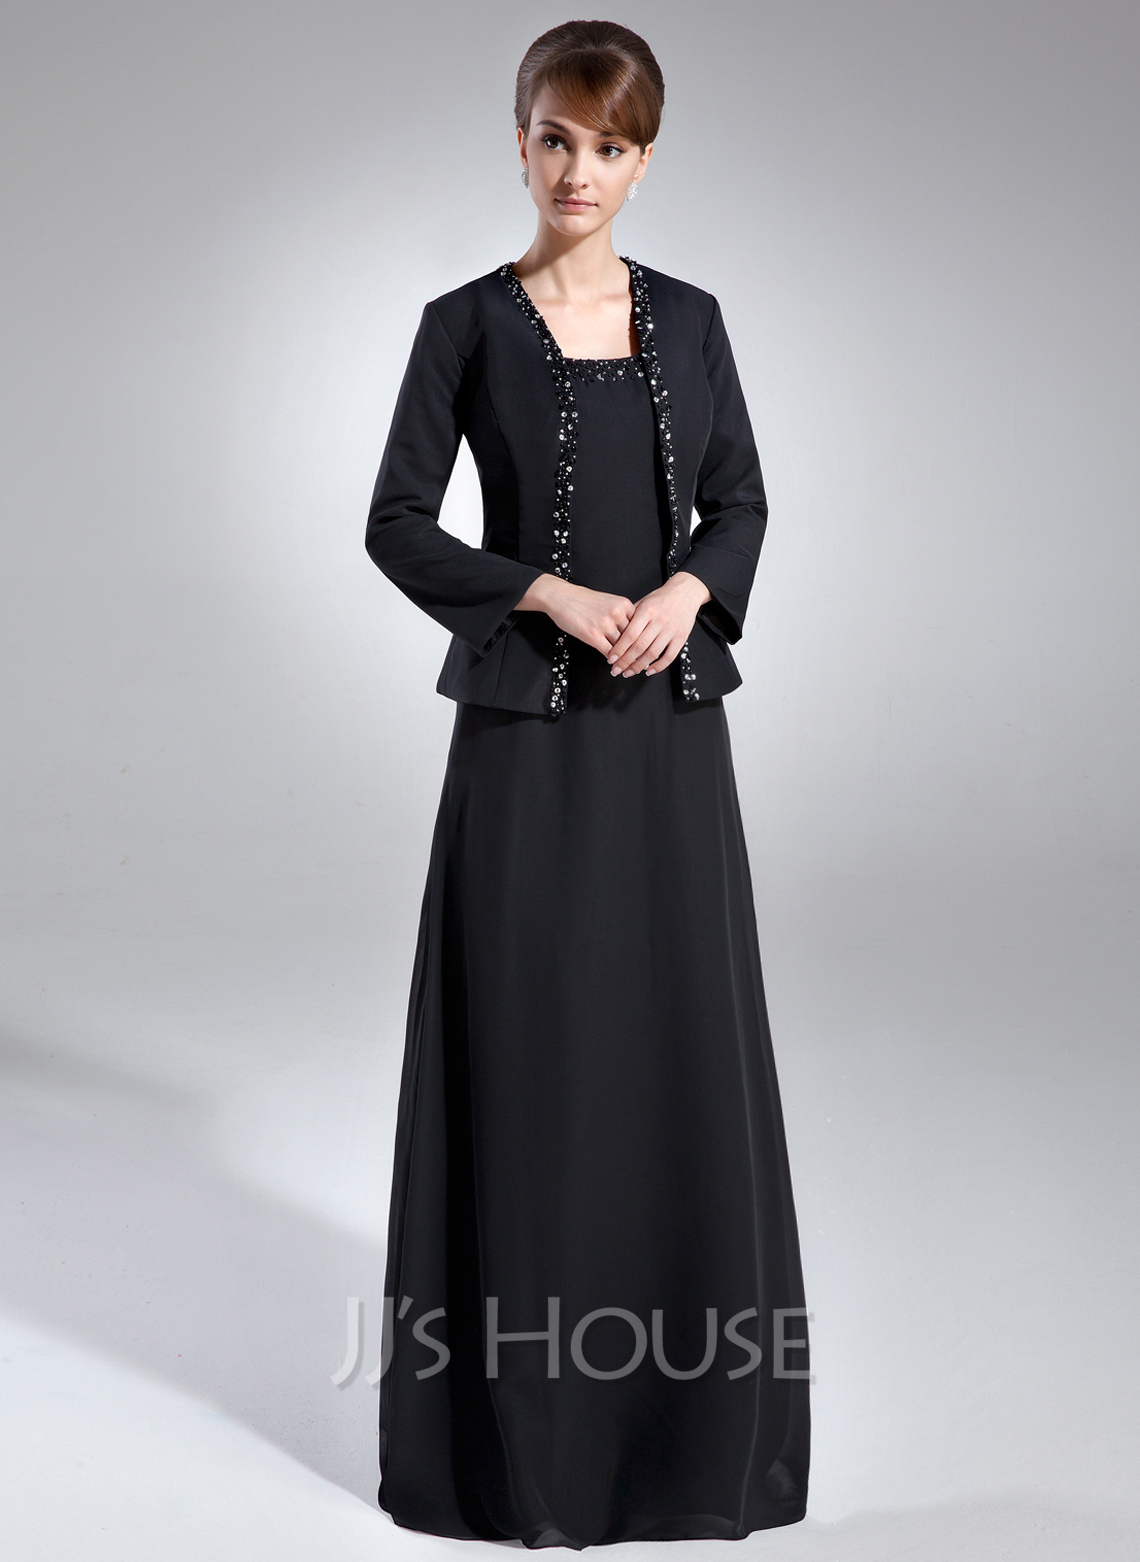 A-Line/Princess Square Neckline Floor-Length Chiffon Mother of the Bride Dress With Beading Sequins